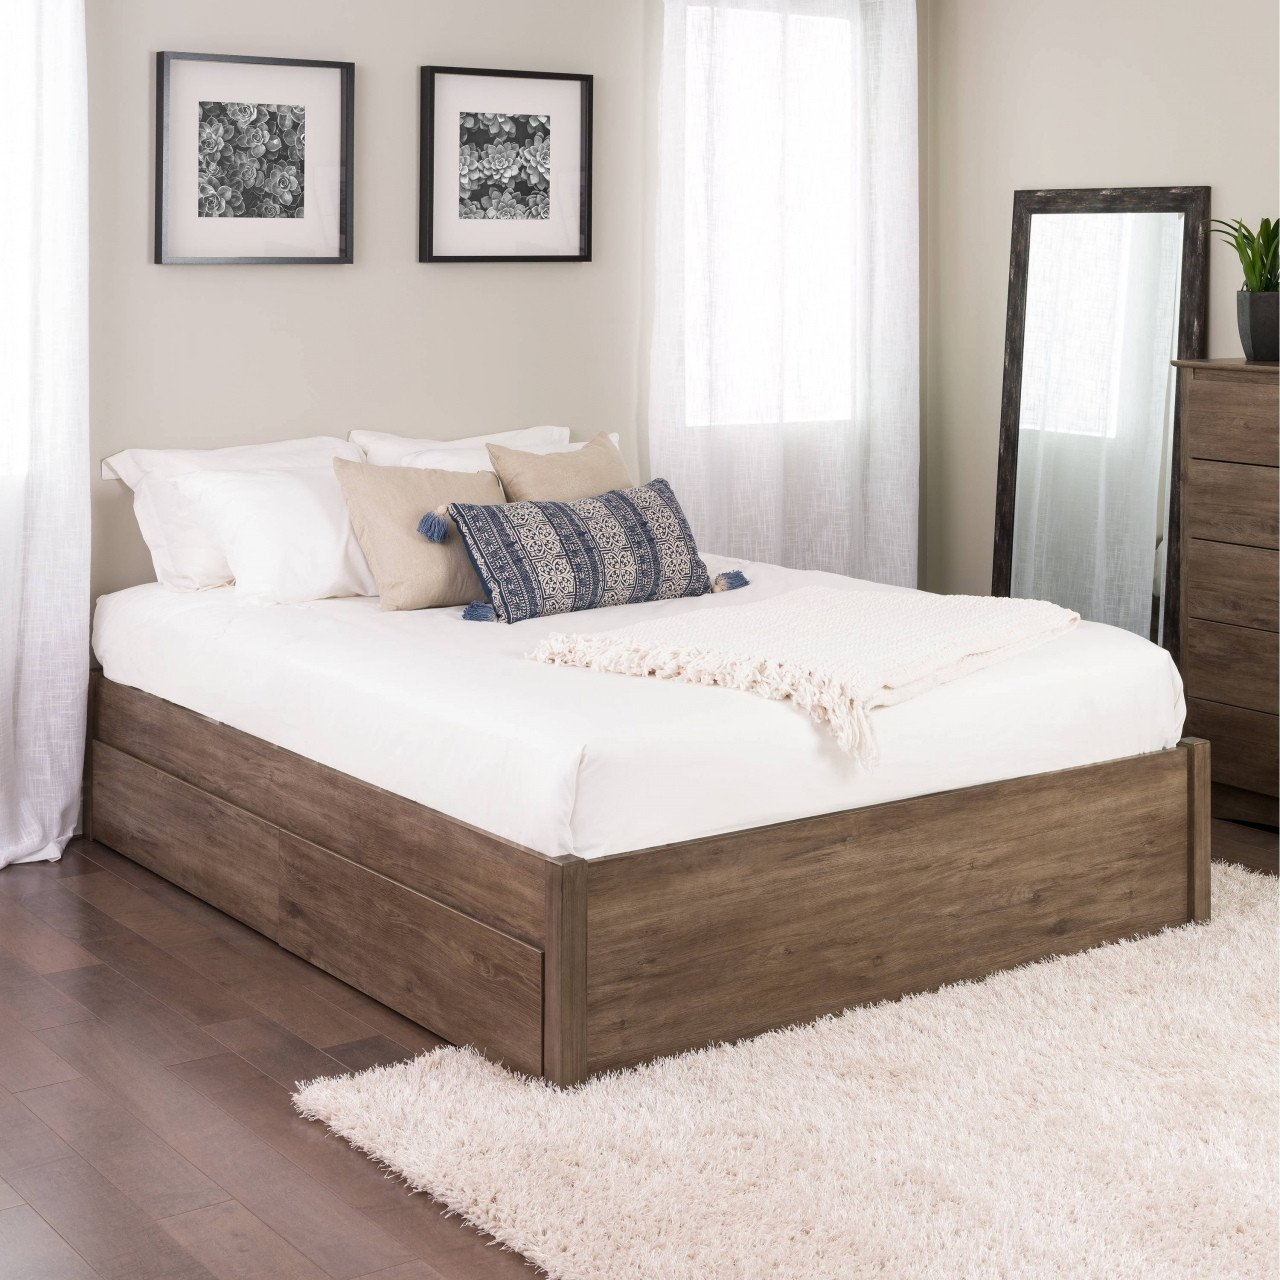 Queen Size Bedroom Suite Elegant Queen Size Bed Frame with Drawers — Procura Home Blog